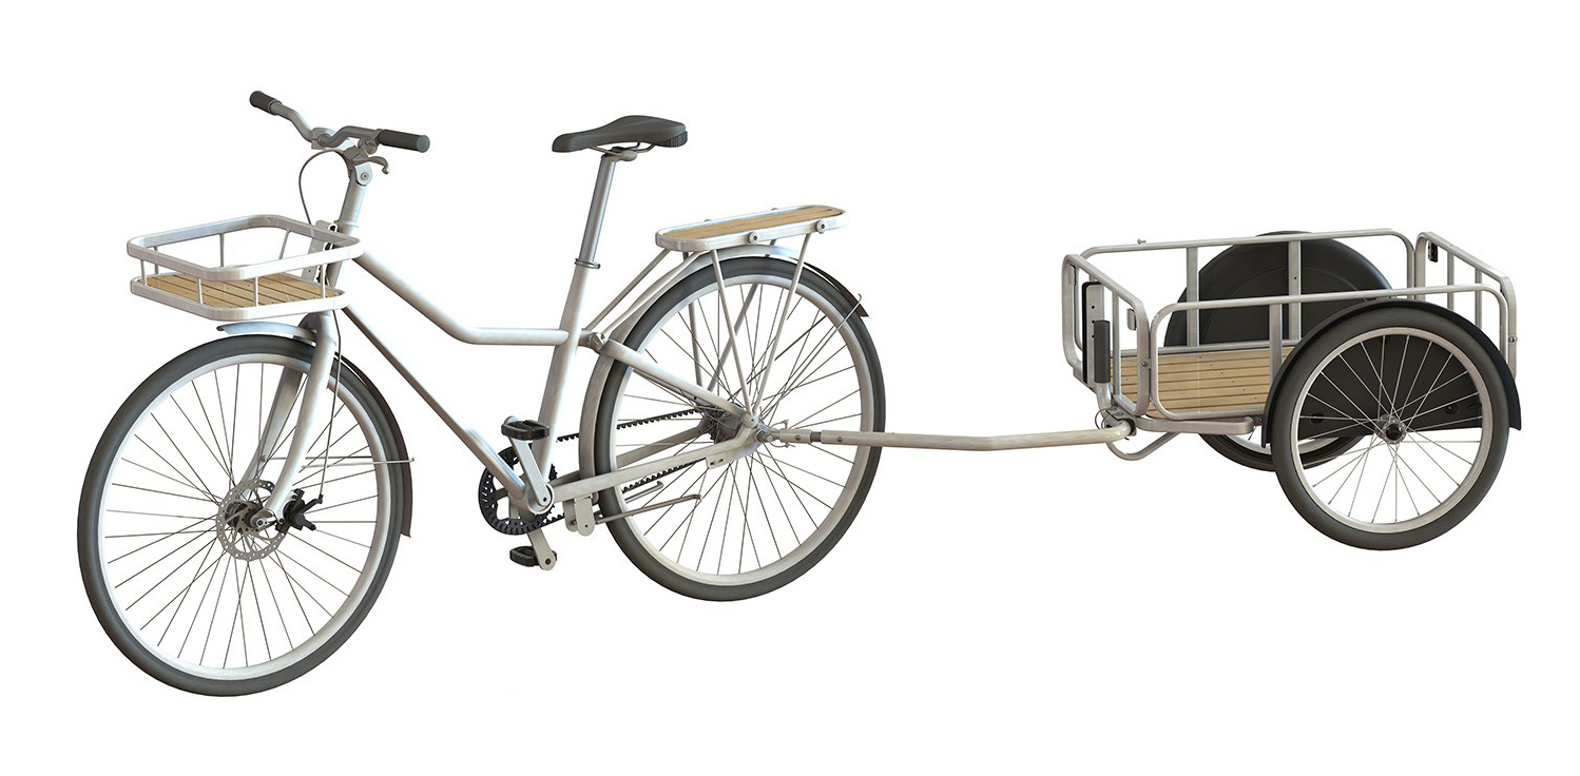 Ikea Is Launching A Chainless Bicycle Called Sladda This Year